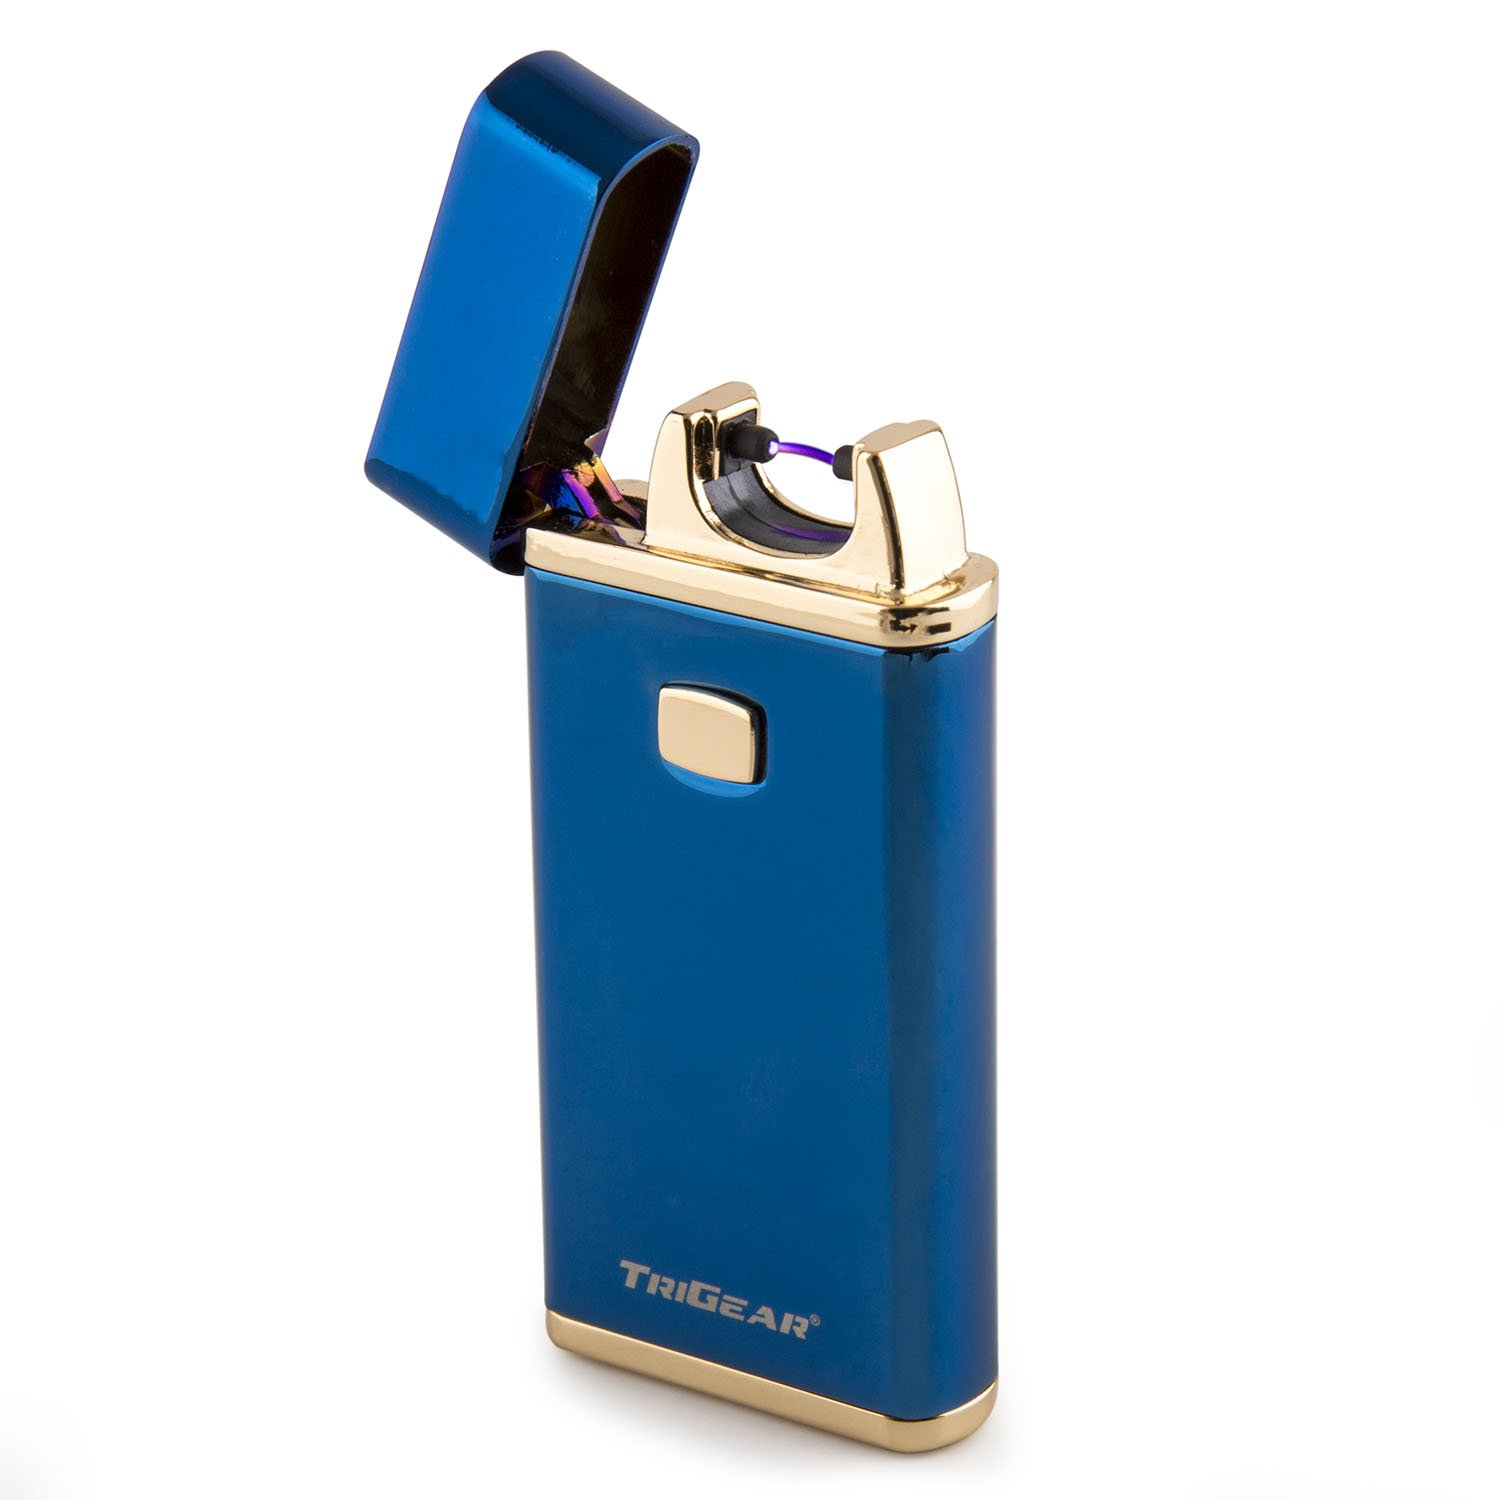 TriGear Elite Series Windproof USB Rechargeable Marine Blue Electric Arc Coil Lighter by TriGear (Image #1)